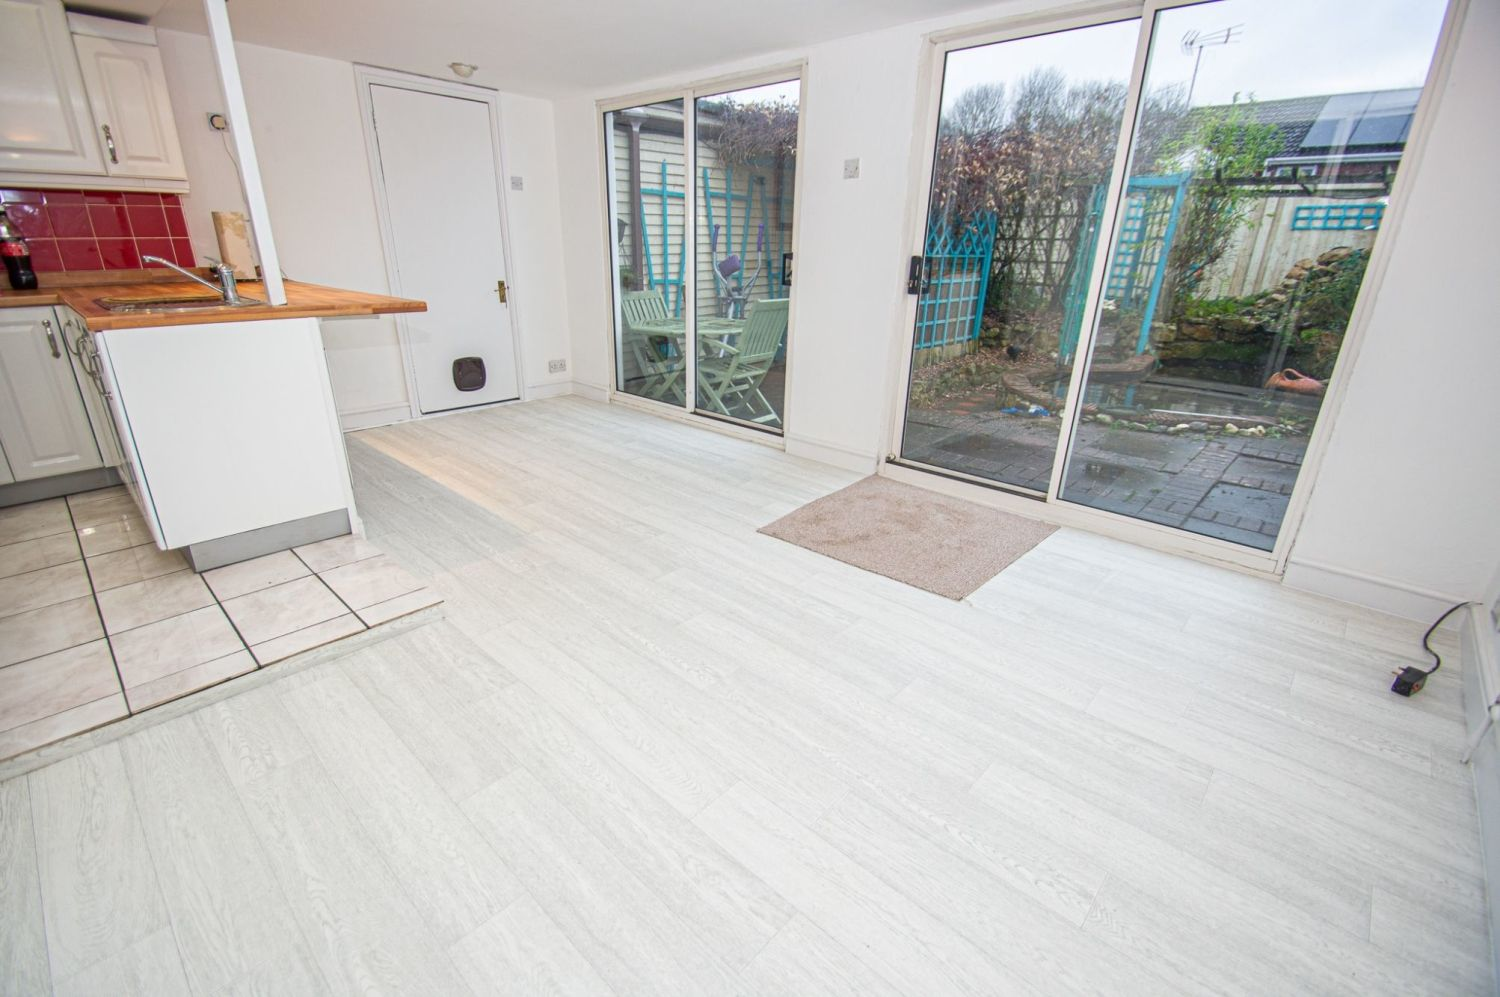 3 bed semi-detached for sale in Cheswick Close, Winyates Green  - Property Image 5